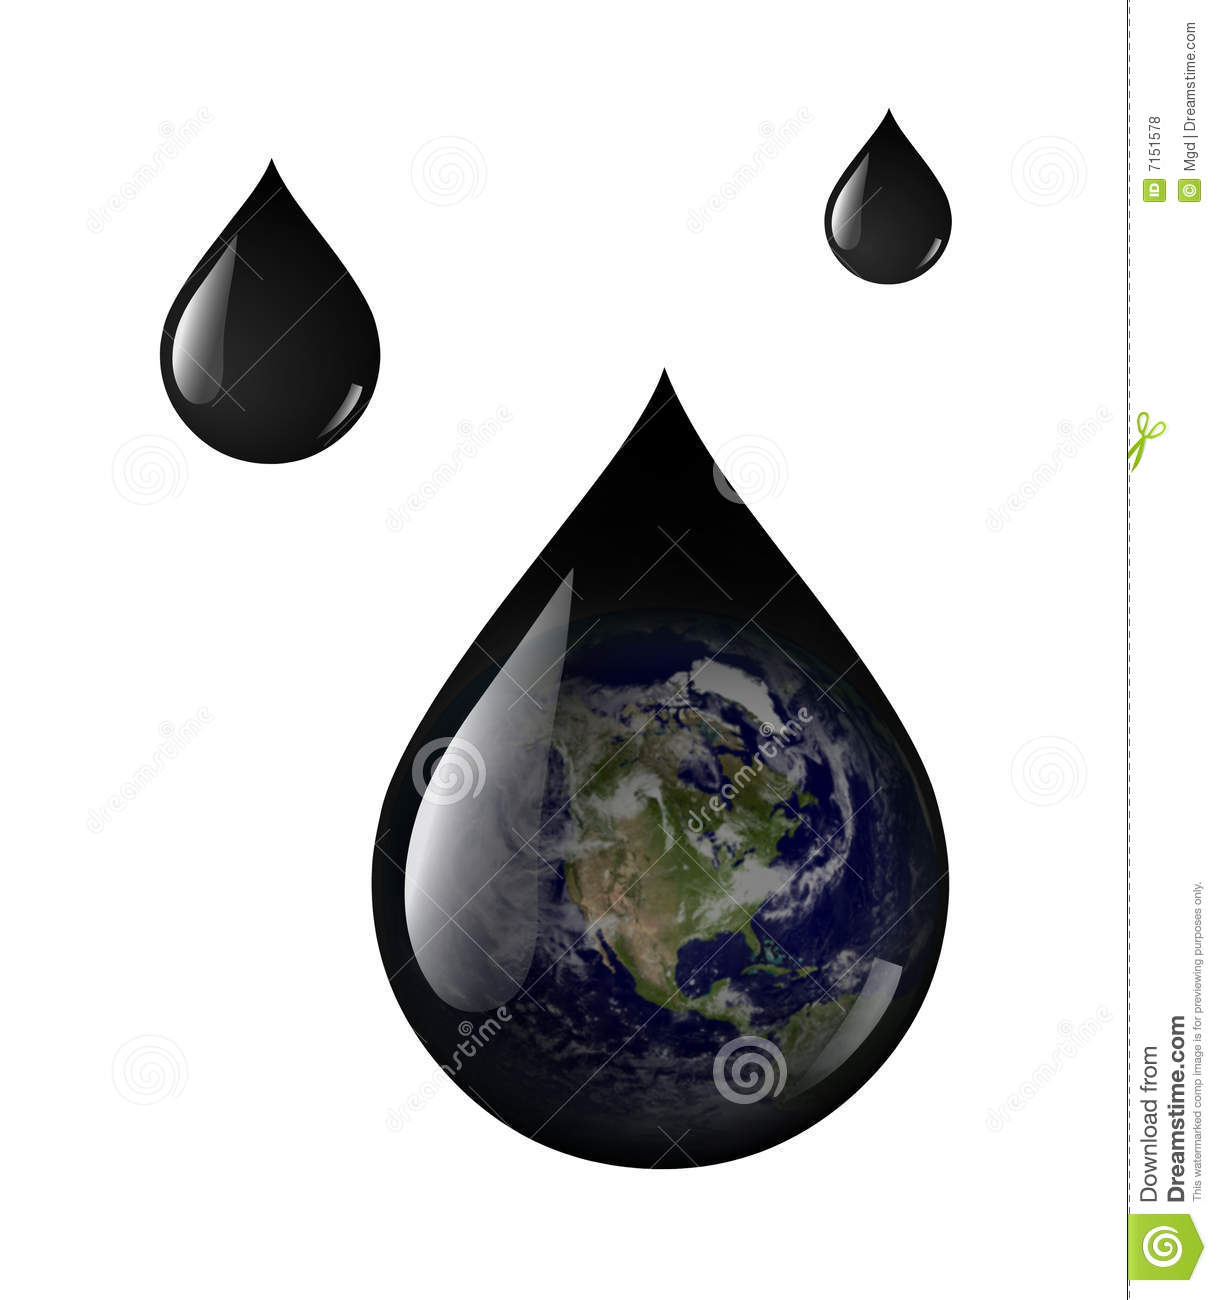 Earth Oil Drops Royalty Free Stock Photos - Image: 7151578  Earth Oil Drops...